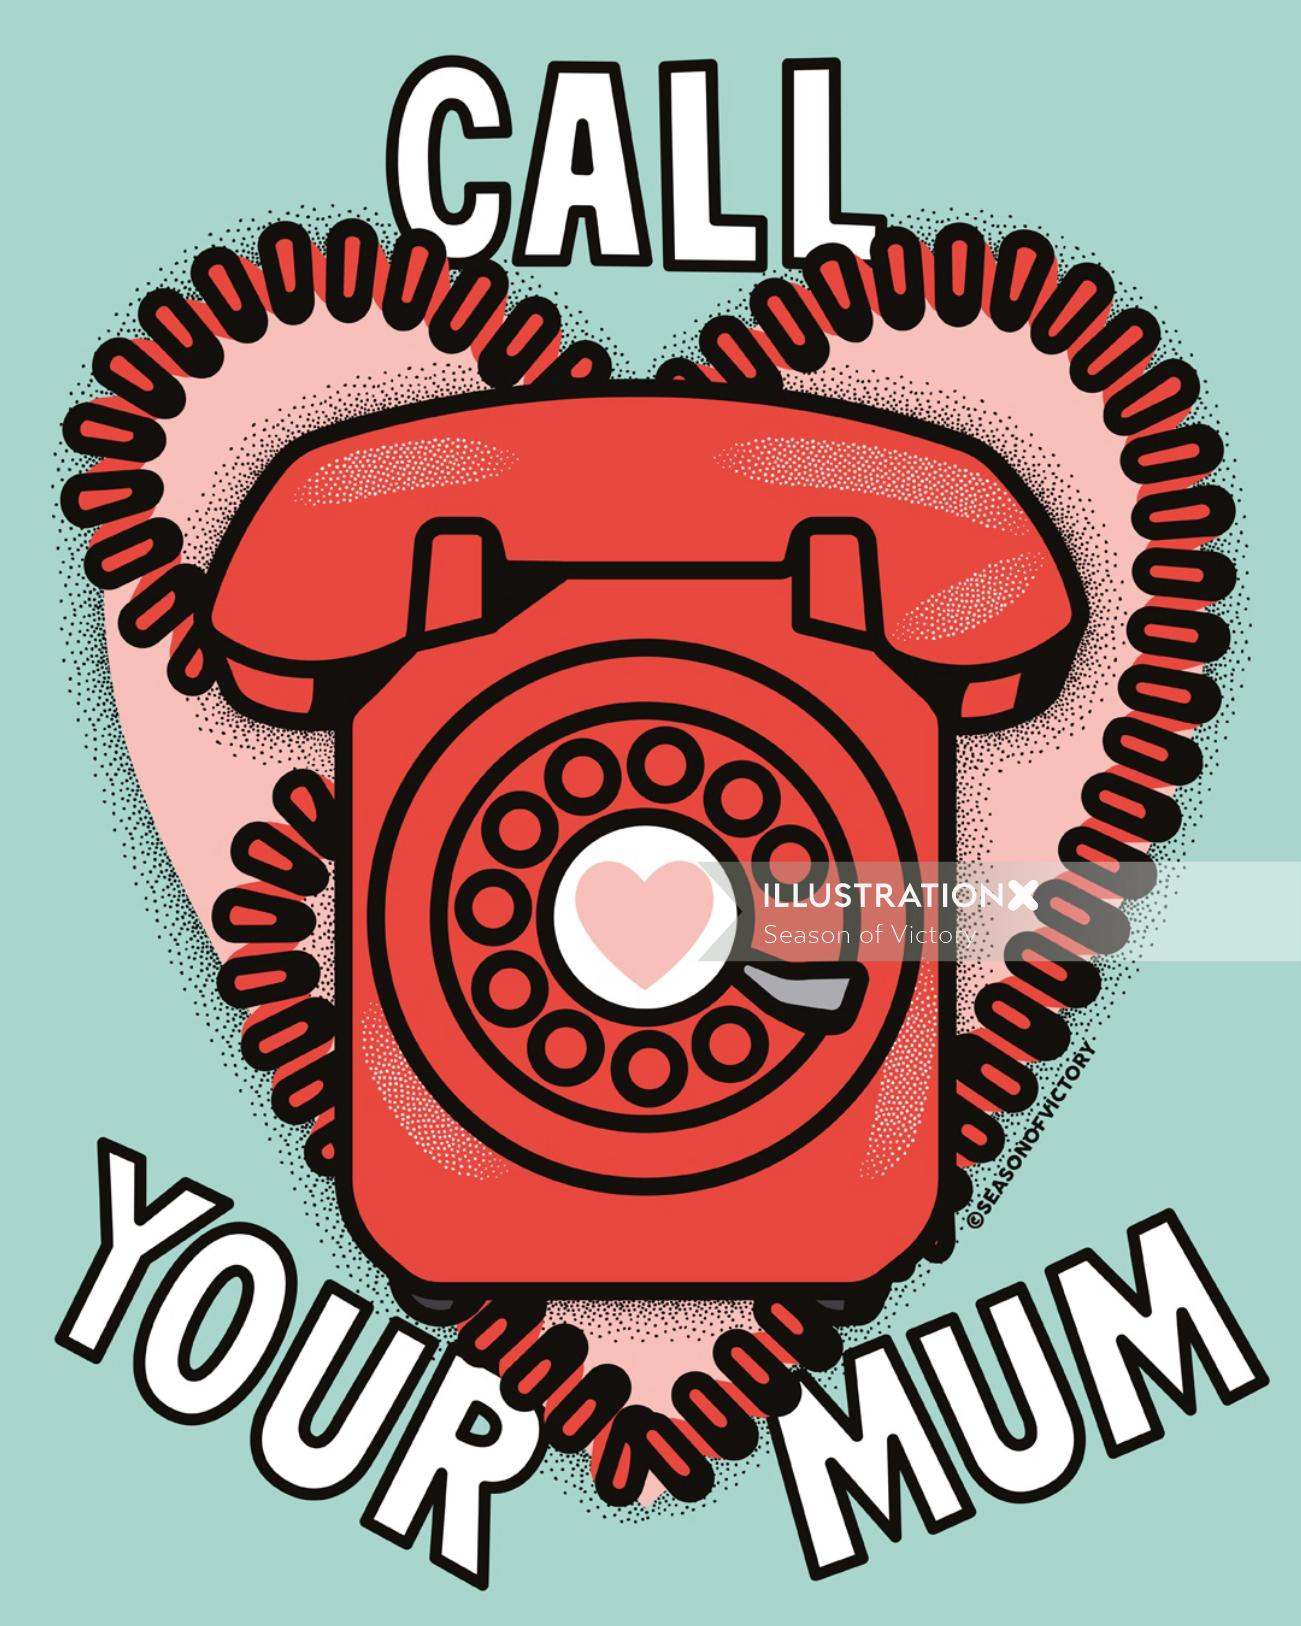 Mom, Mother's Day, love, phone, care, distance, telecommunications, mum, care, phone, telephone, ret